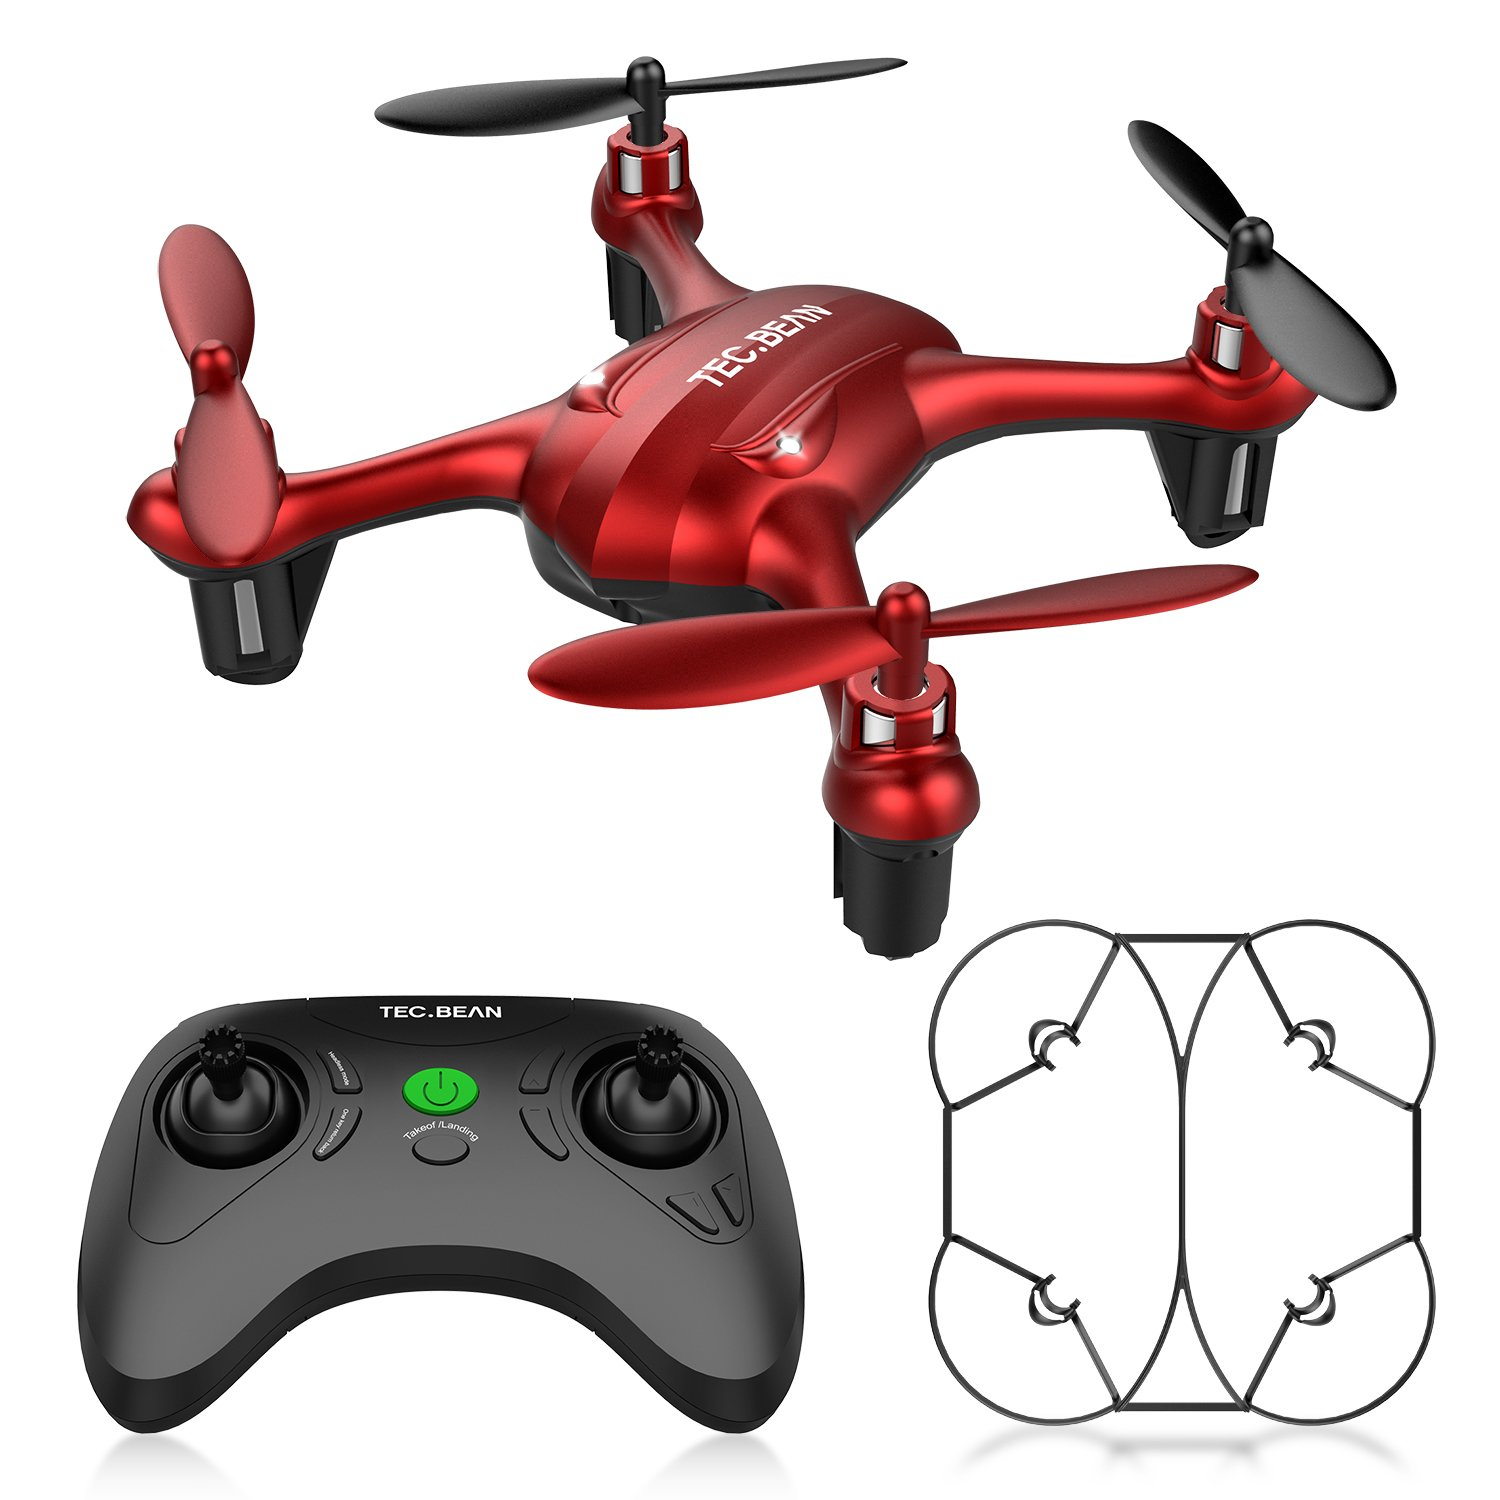 TEC.BEAN Mini Drone for Beginners Hovering Quadcopter with Altitude Hold Mode One Key Take Off Landing Return Home Entry Level for Kids by TEC.BEAN (Image #1)